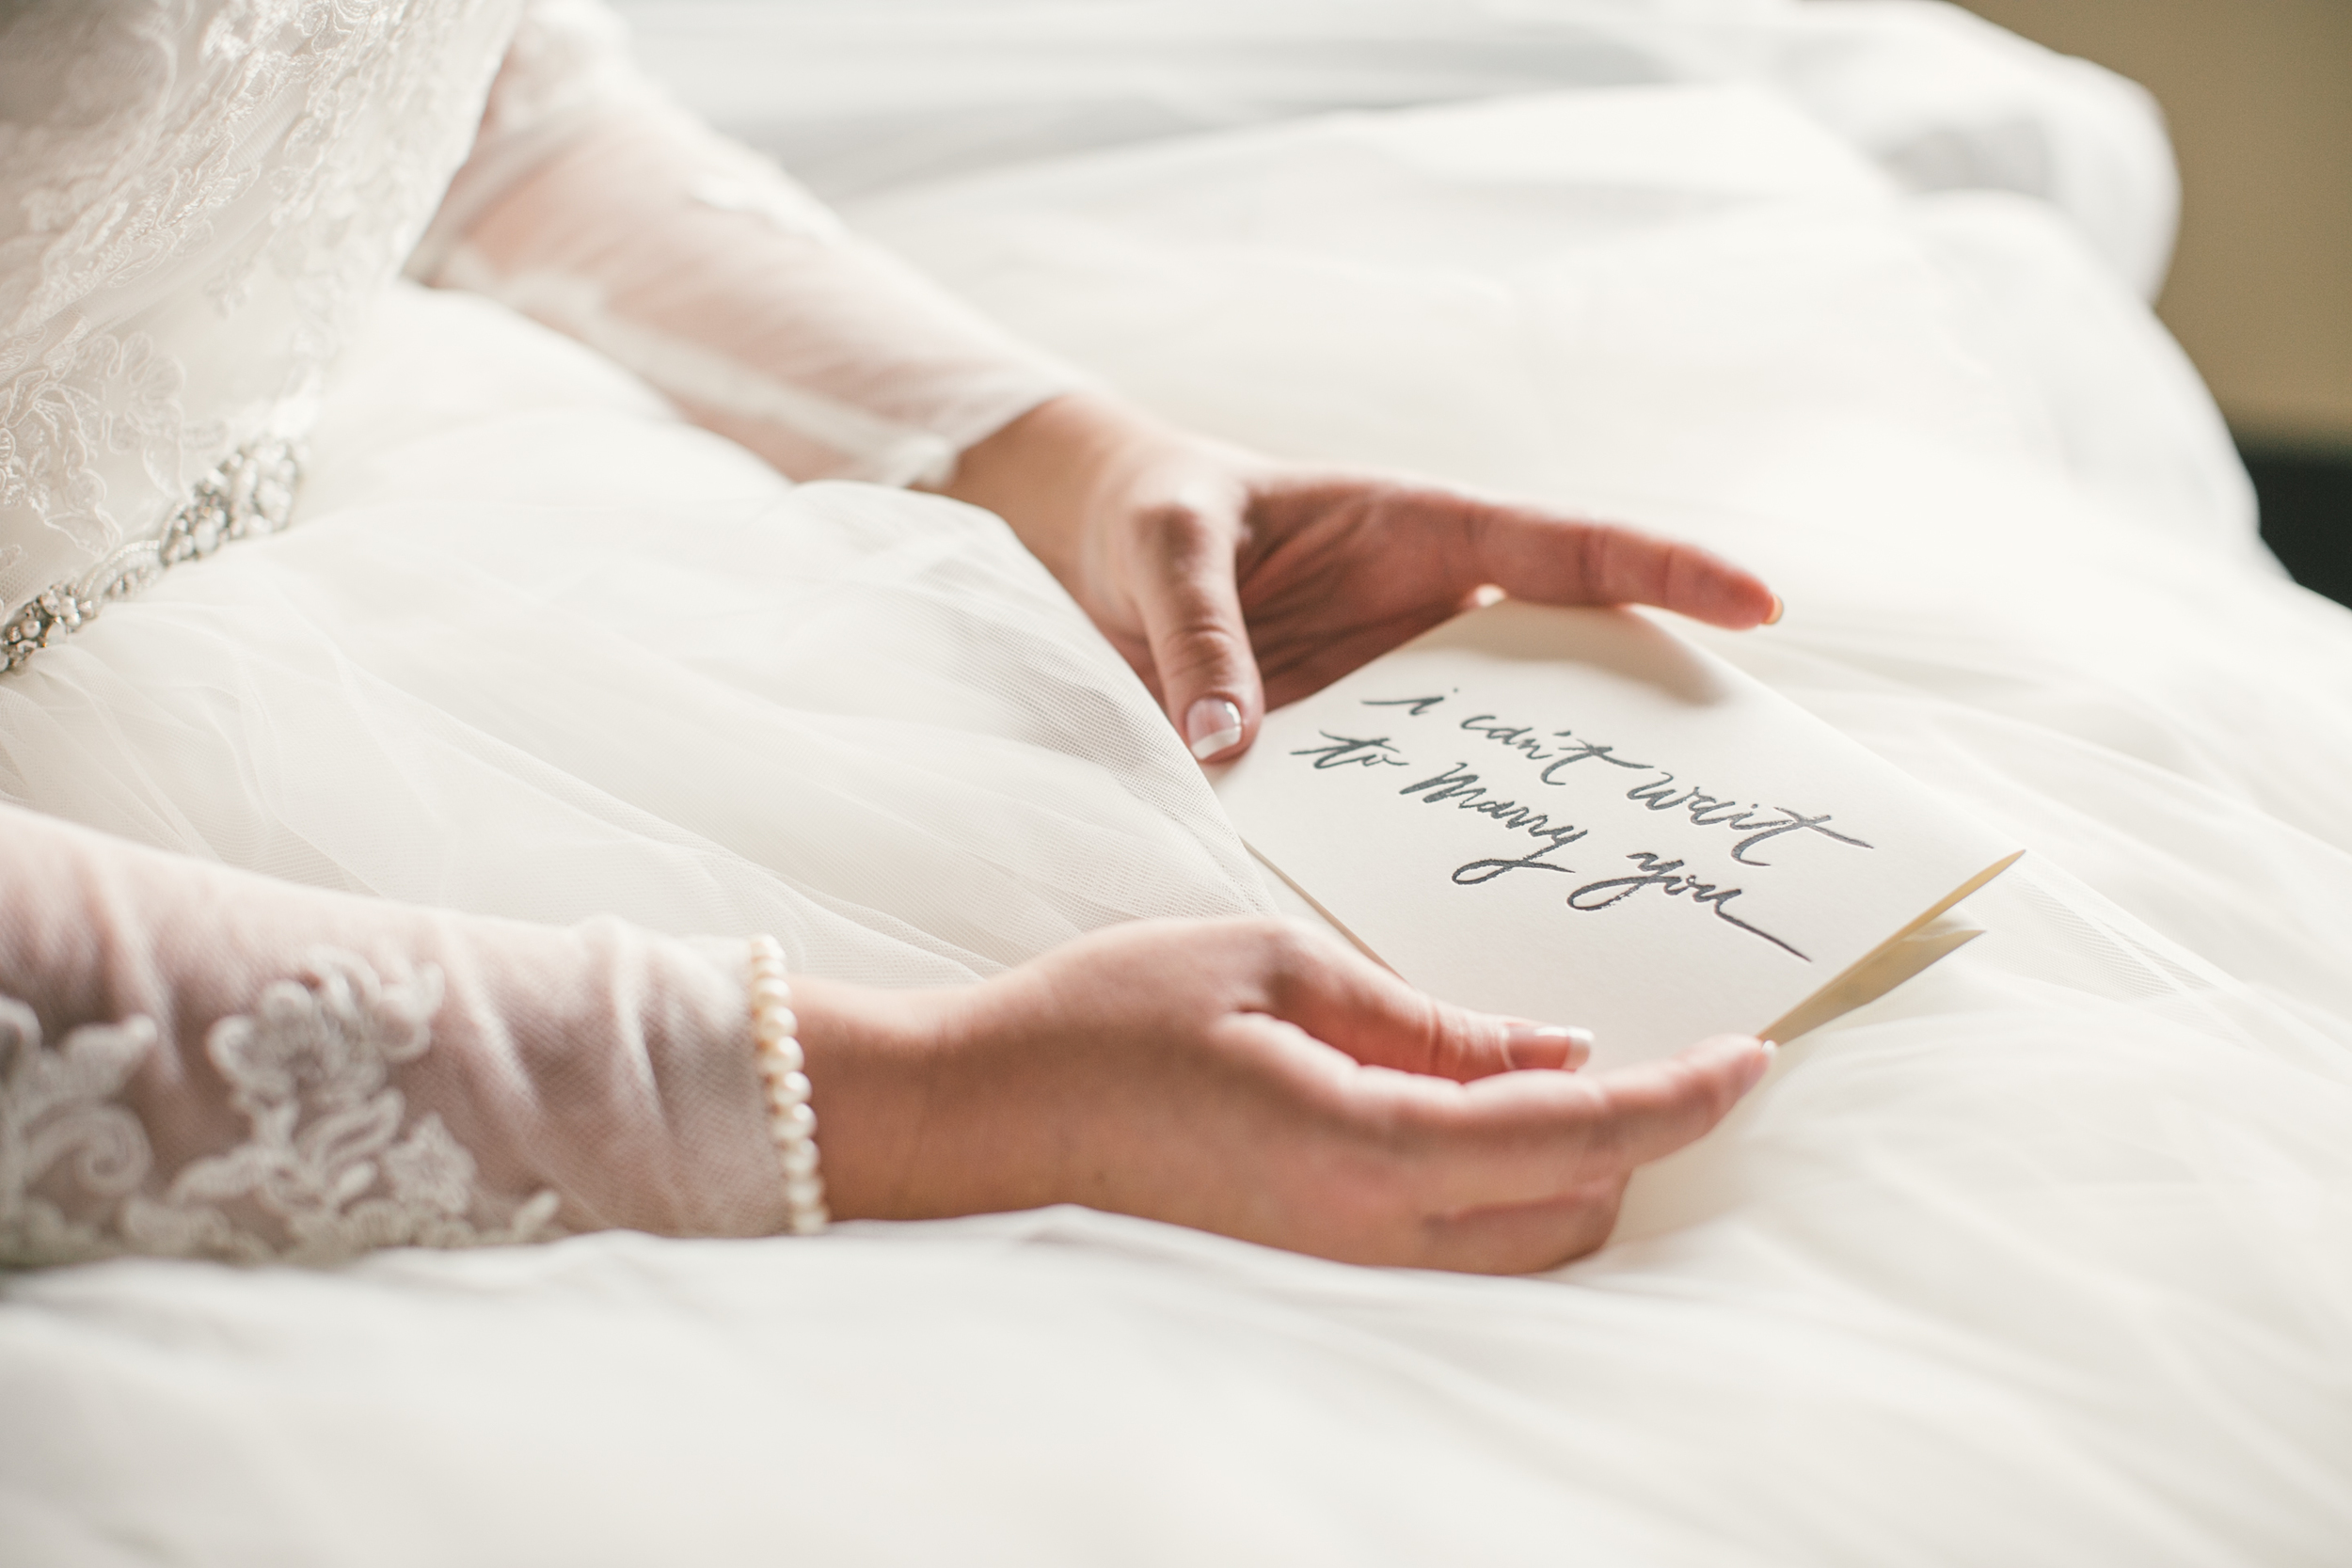 Letter from the groom - eversomething.com